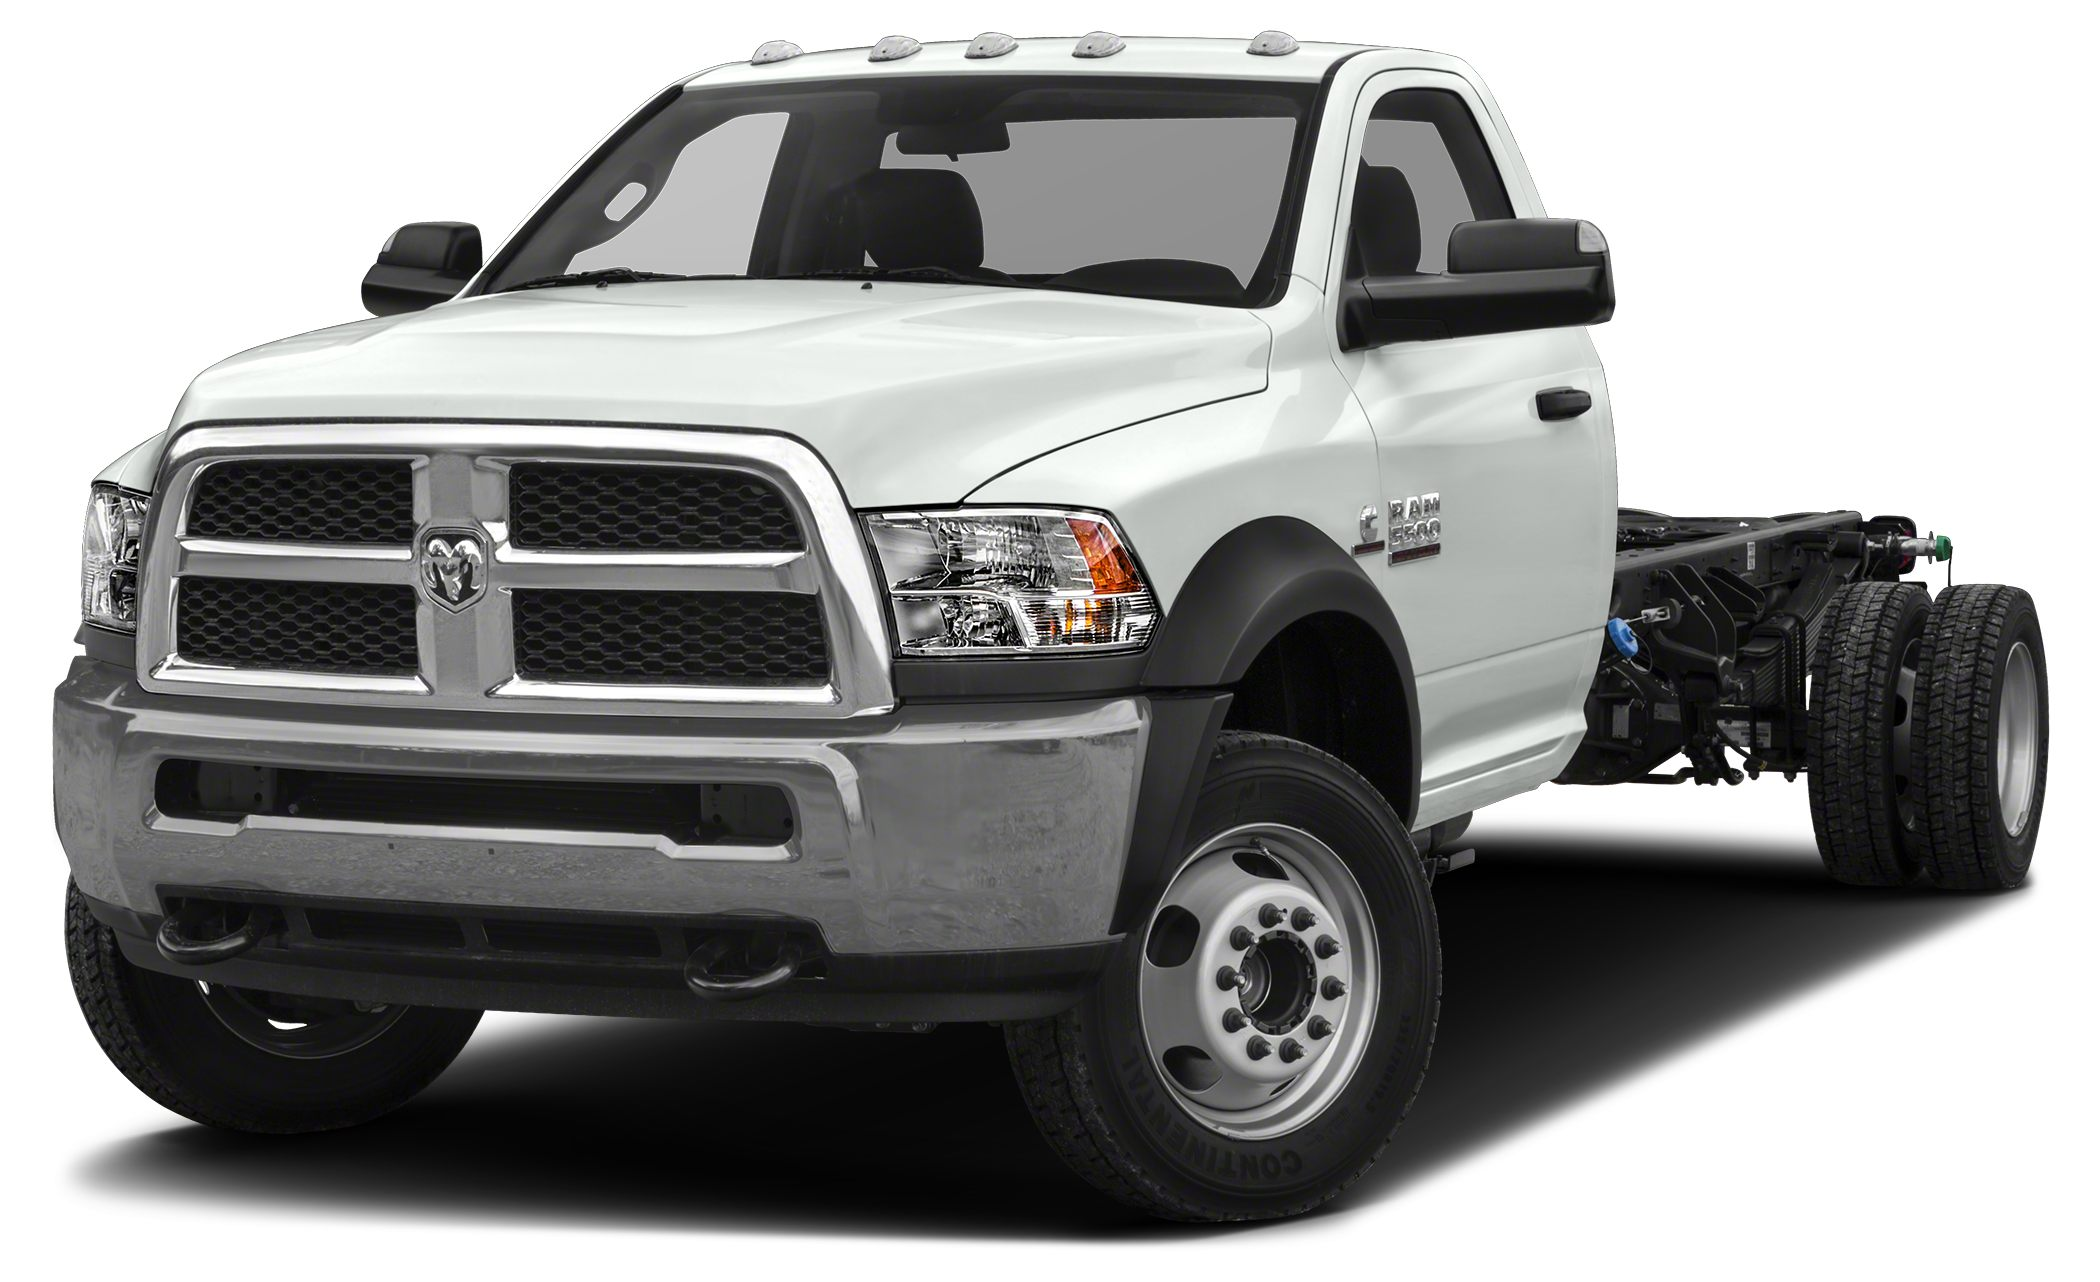 2015 RAM 5500HD Chassis Cab TradesmanSLT Miles 12Color Bright White Clearcoat Stock 21075 VI